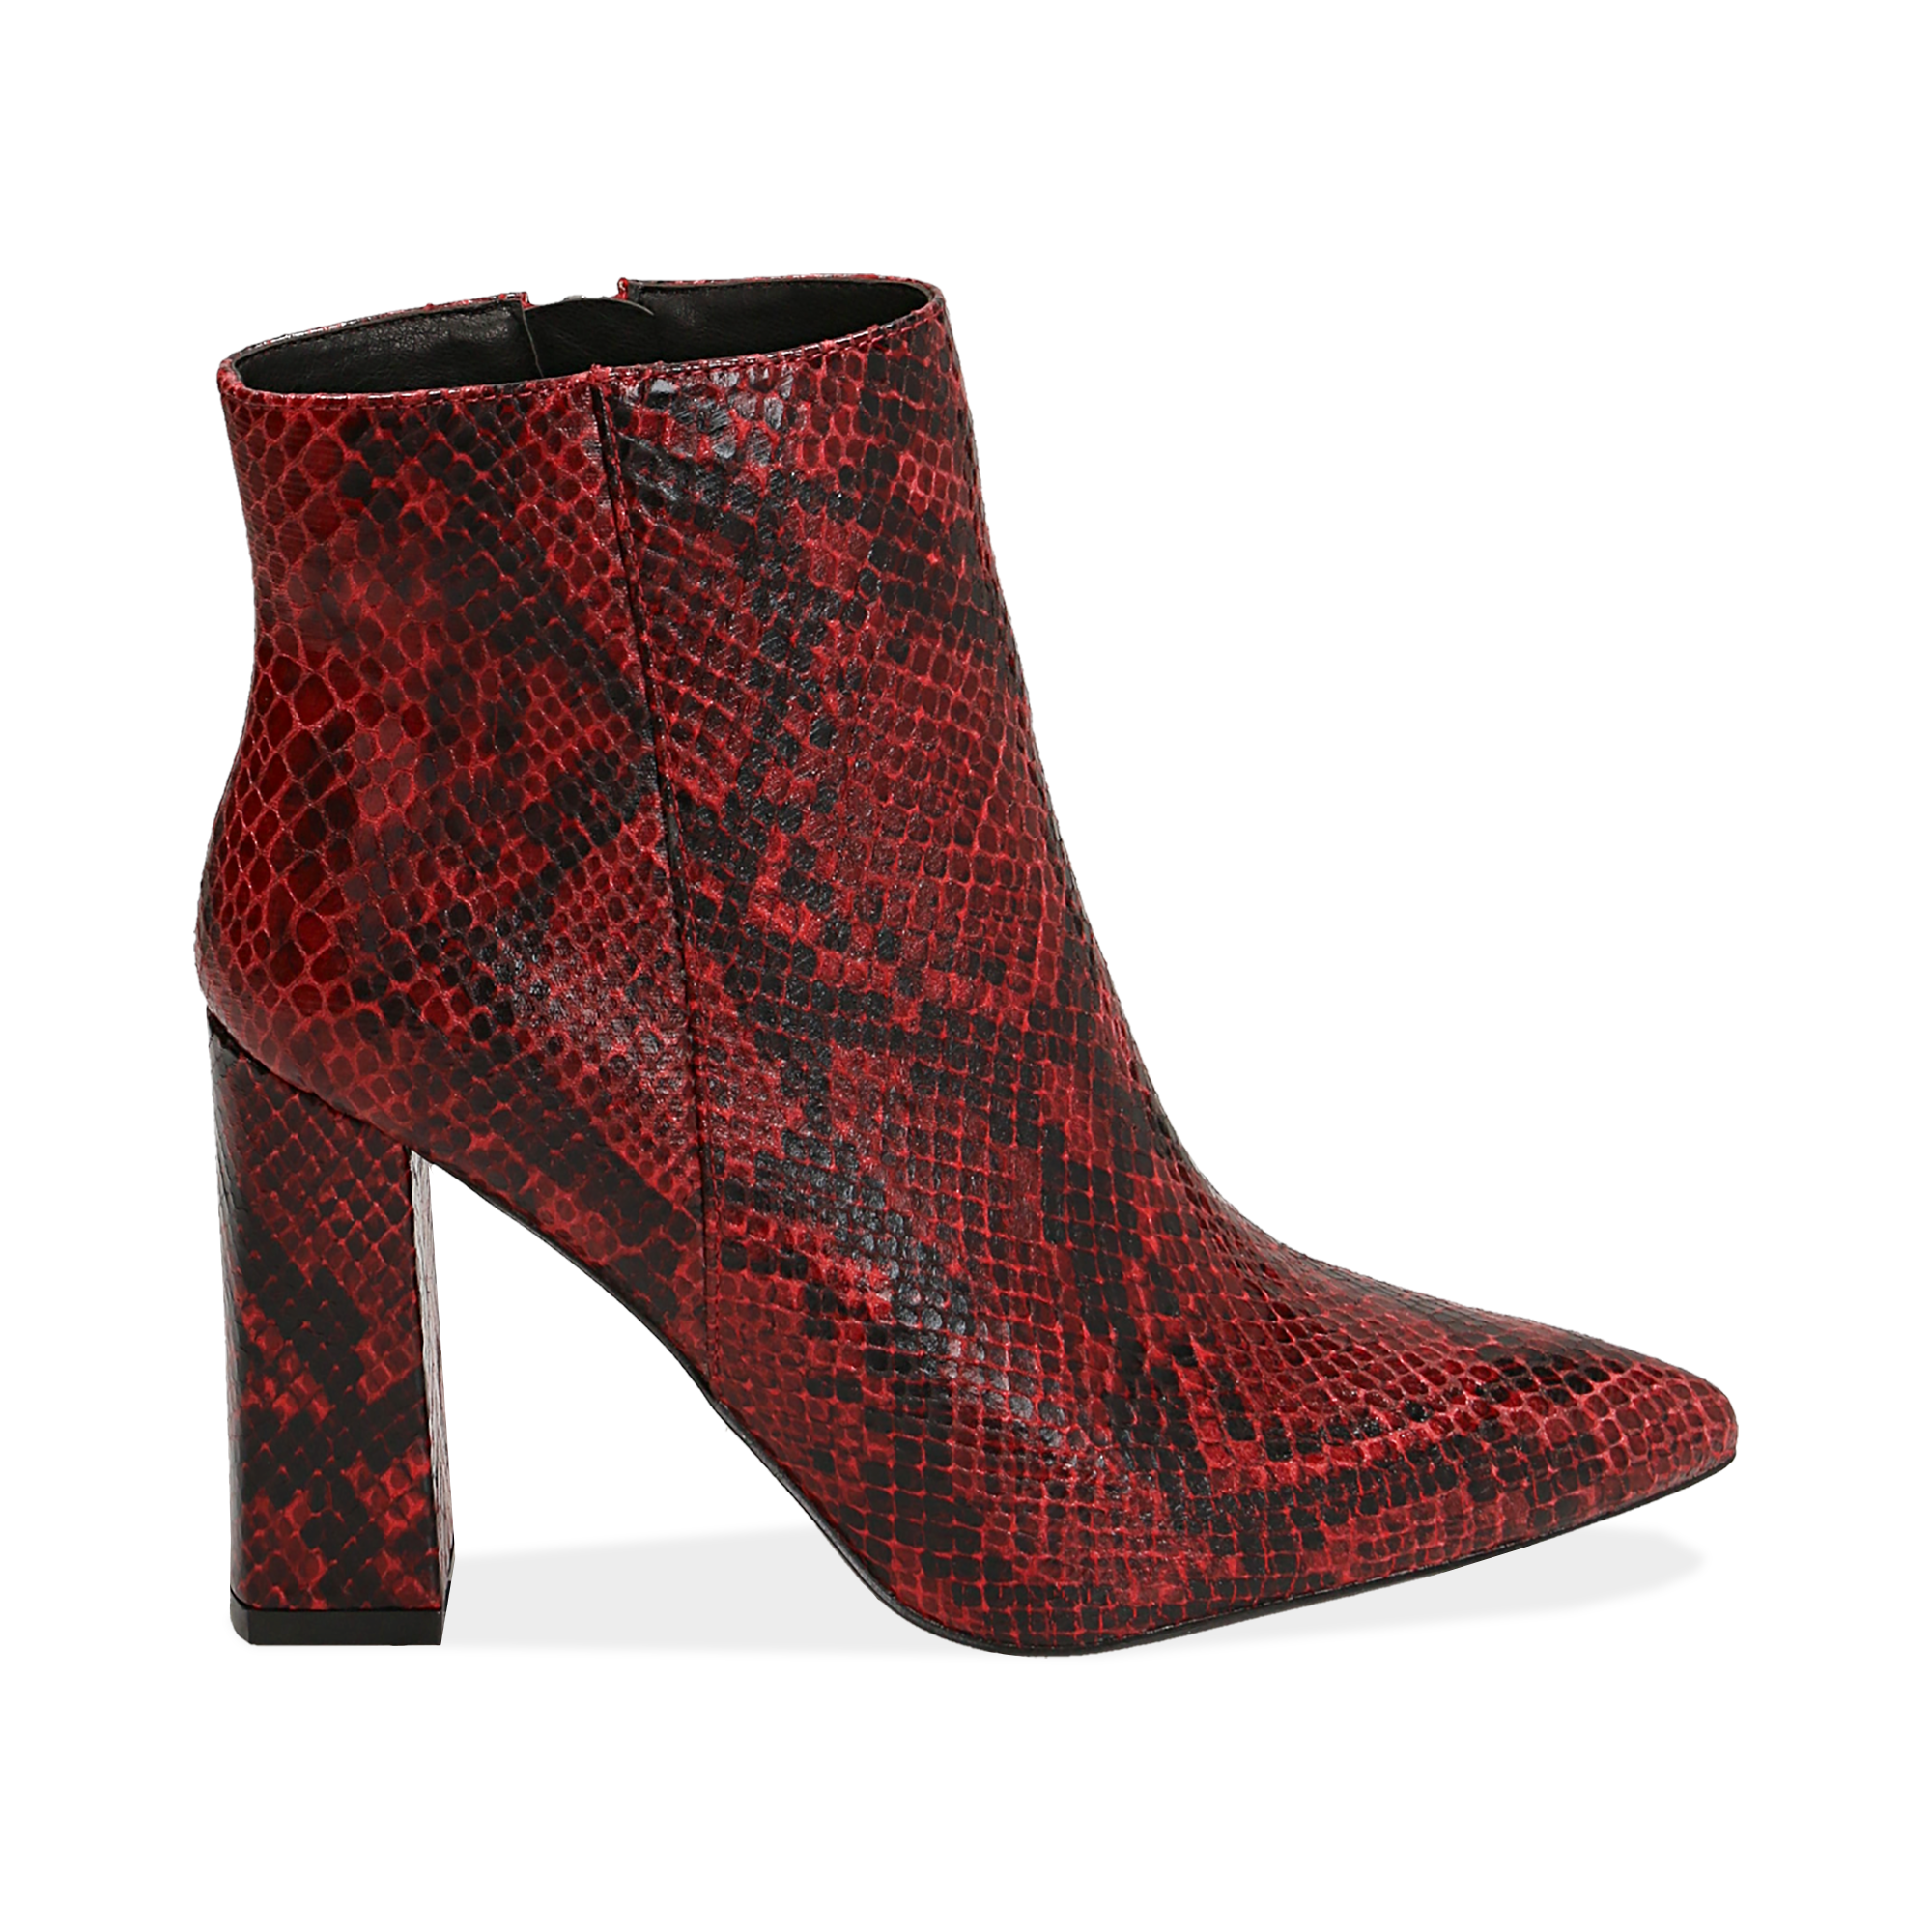 Ankle boots rossi in eco-pelle stampa pitone, tacco 9,5 cm